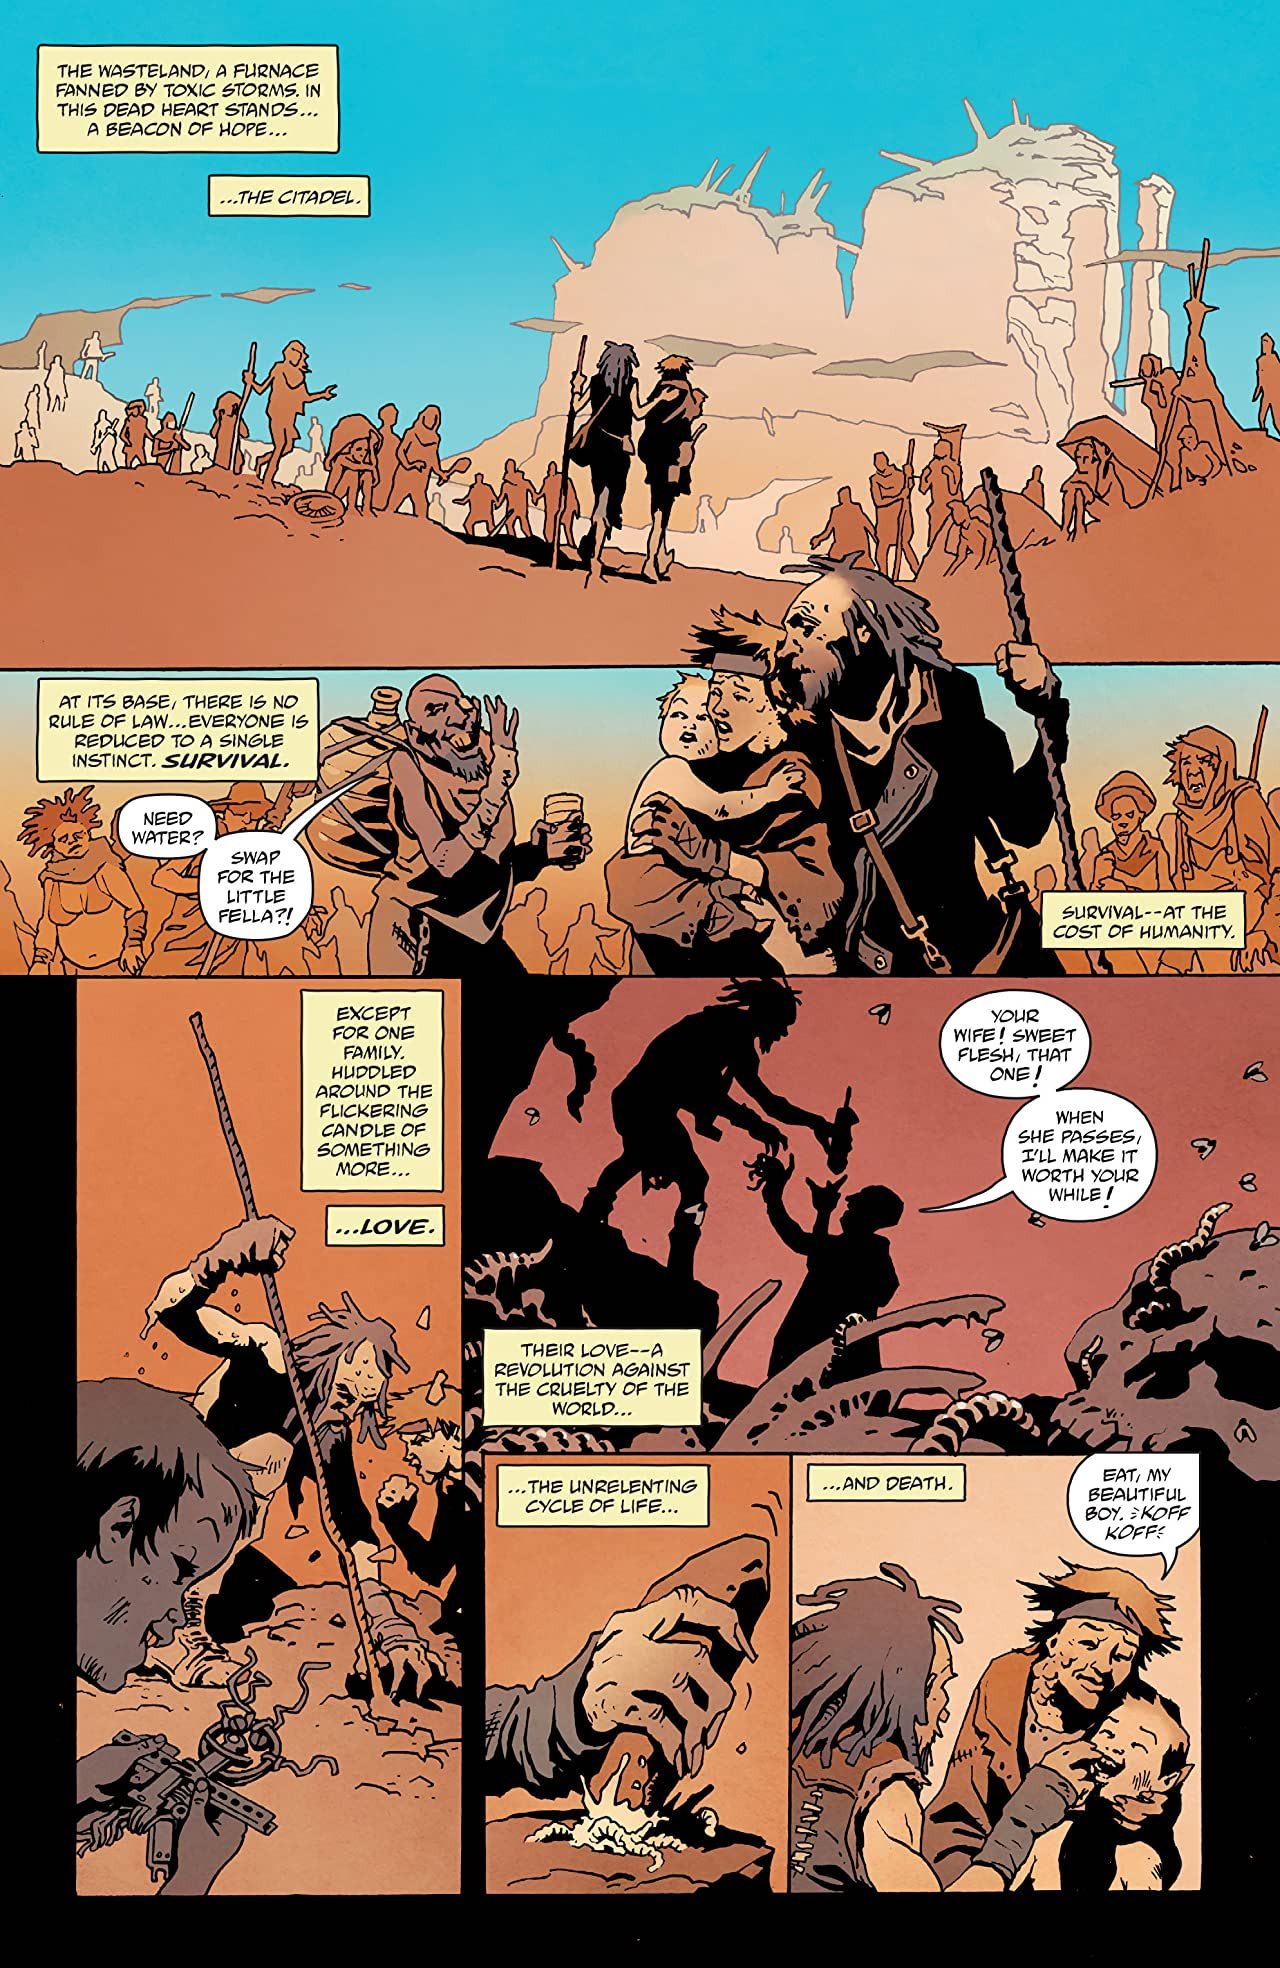 Mad Max: Fury Road: Nux & Immortan Joe (2015) #1